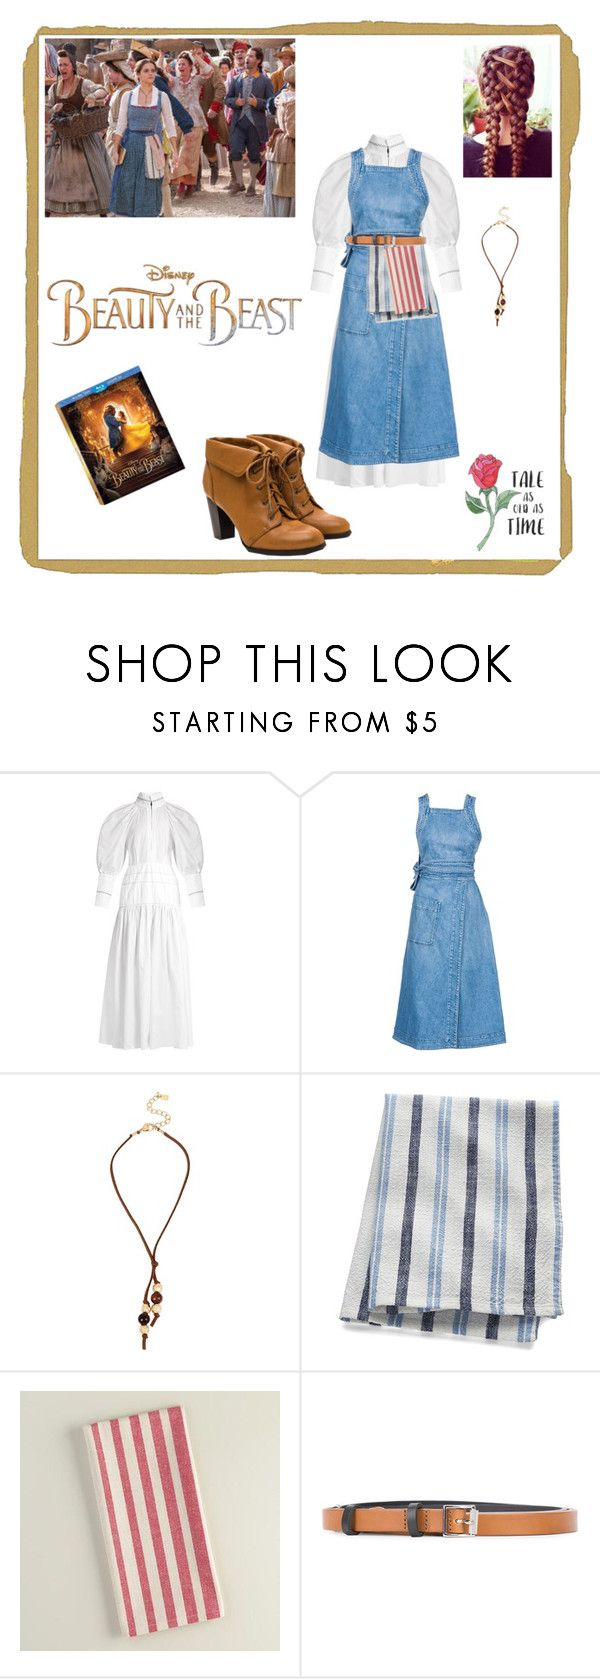 """""""It takes a Village Belle"""" by closet-freak ❤ liked on Polyvore featuring E L L E R Y, Disney, STELLA McCARTNEY, Robert Lee Morris, Crate and Barrel, Cost Plus World Market, rag & bone, BeautyandtheBeast and contestentry"""